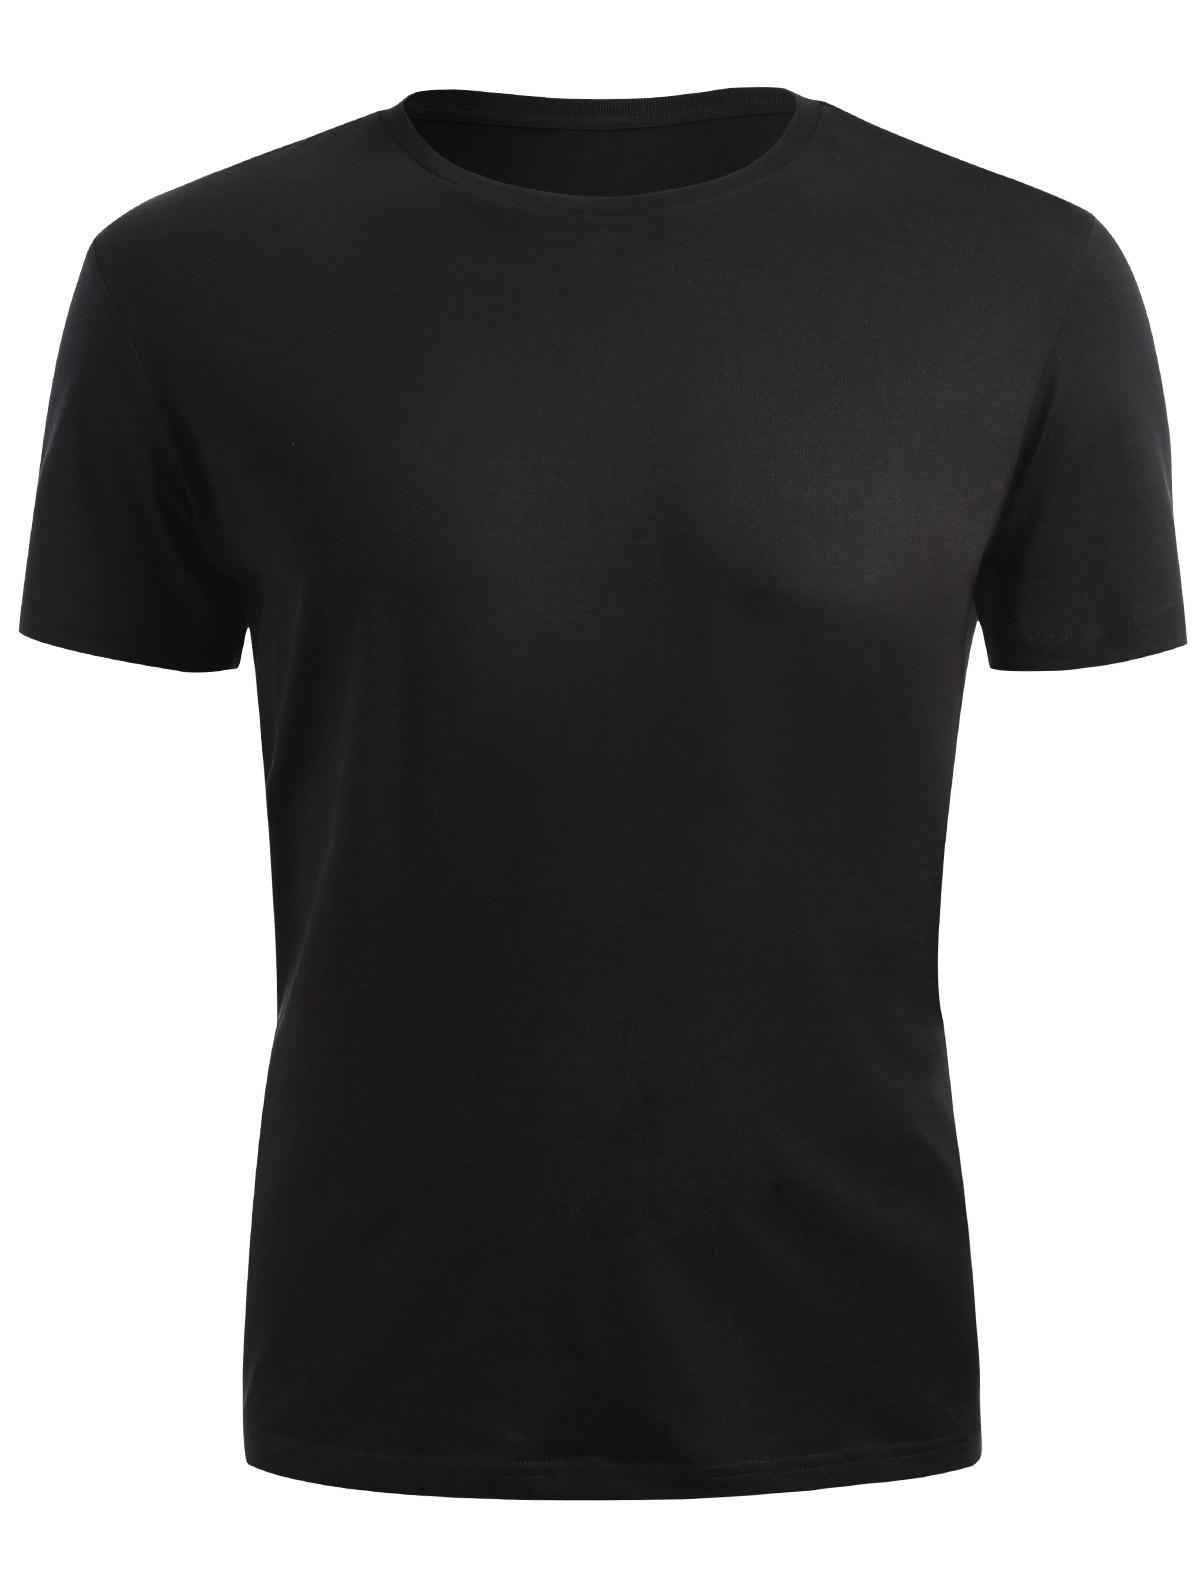 Ribbed Neck Short Sleeve T-shirt - BLACK XL